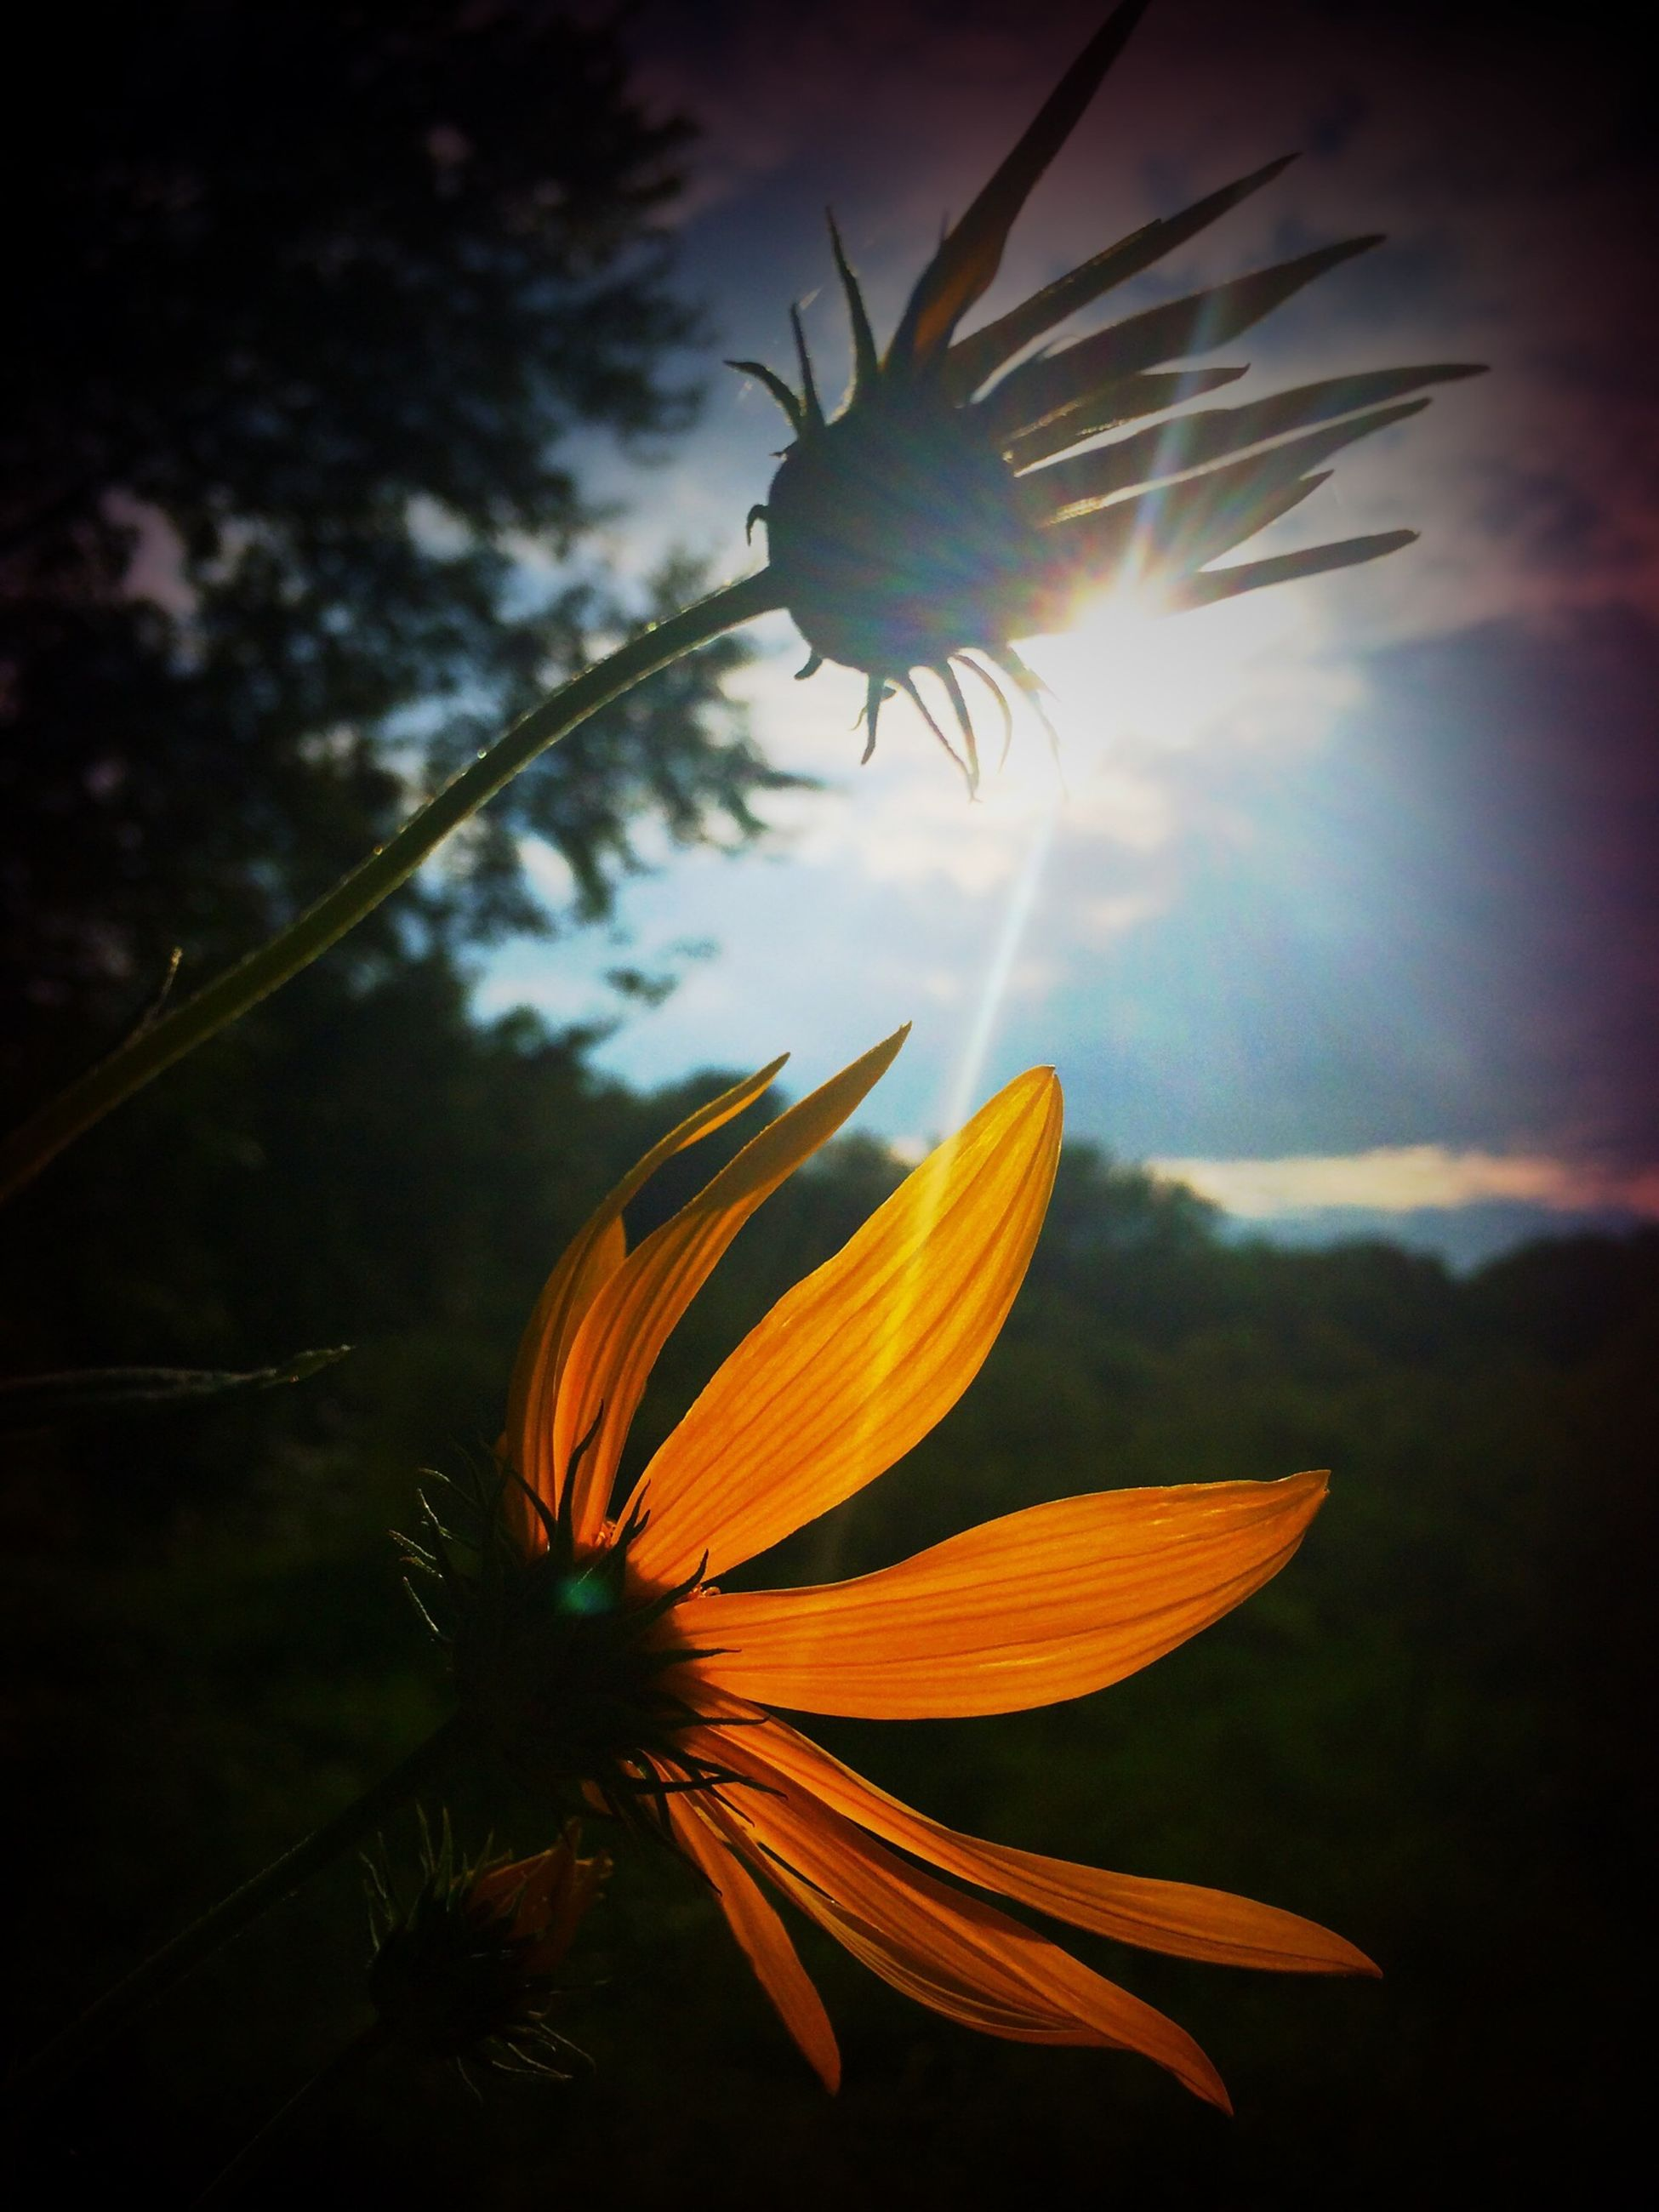 flower, fragility, beauty in nature, growth, freshness, low angle view, sky, sun, nature, flower head, petal, close-up, plant, sunbeam, sunlight, blooming, focus on foreground, single flower, outdoors, in bloom